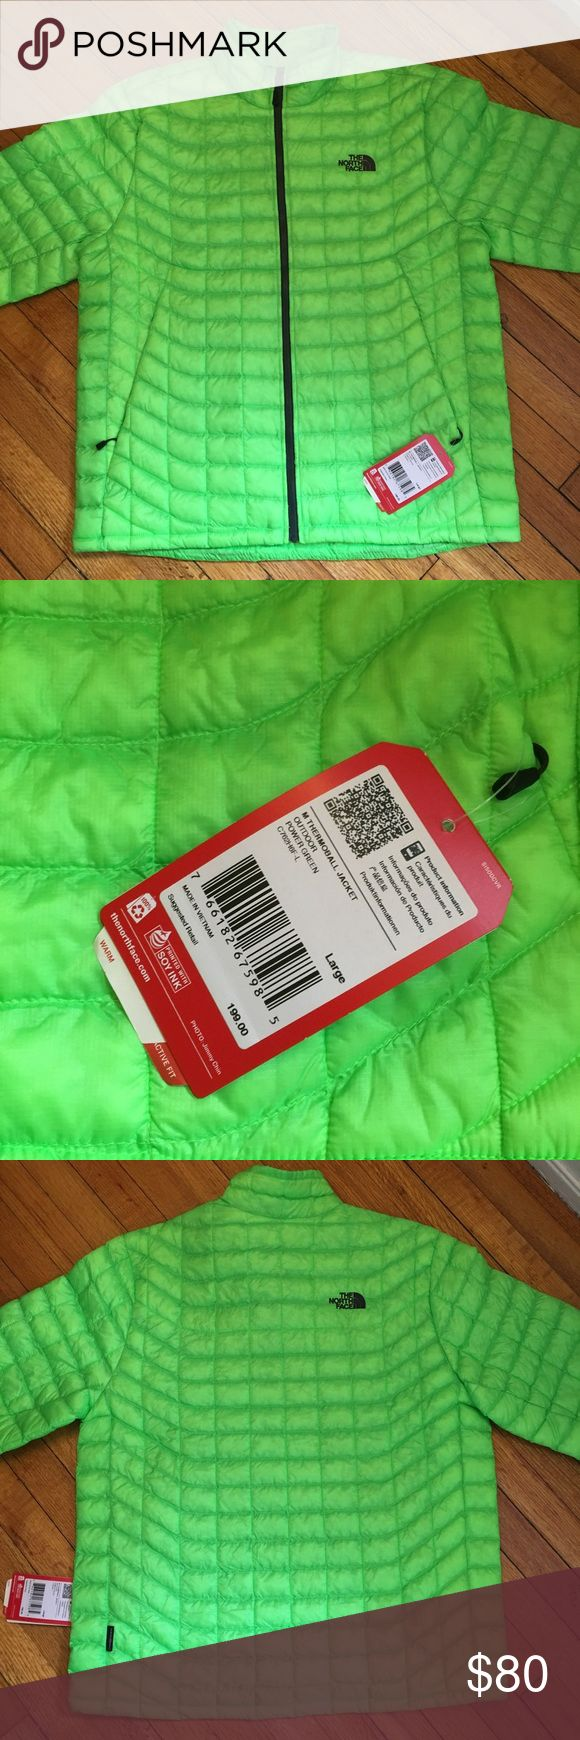 North Face Thermoball Jacket - retails $199 North Face Thermoball Jacket - men's L & M - retails $199 - new w/ tags North Face Jackets & Coats Puffers